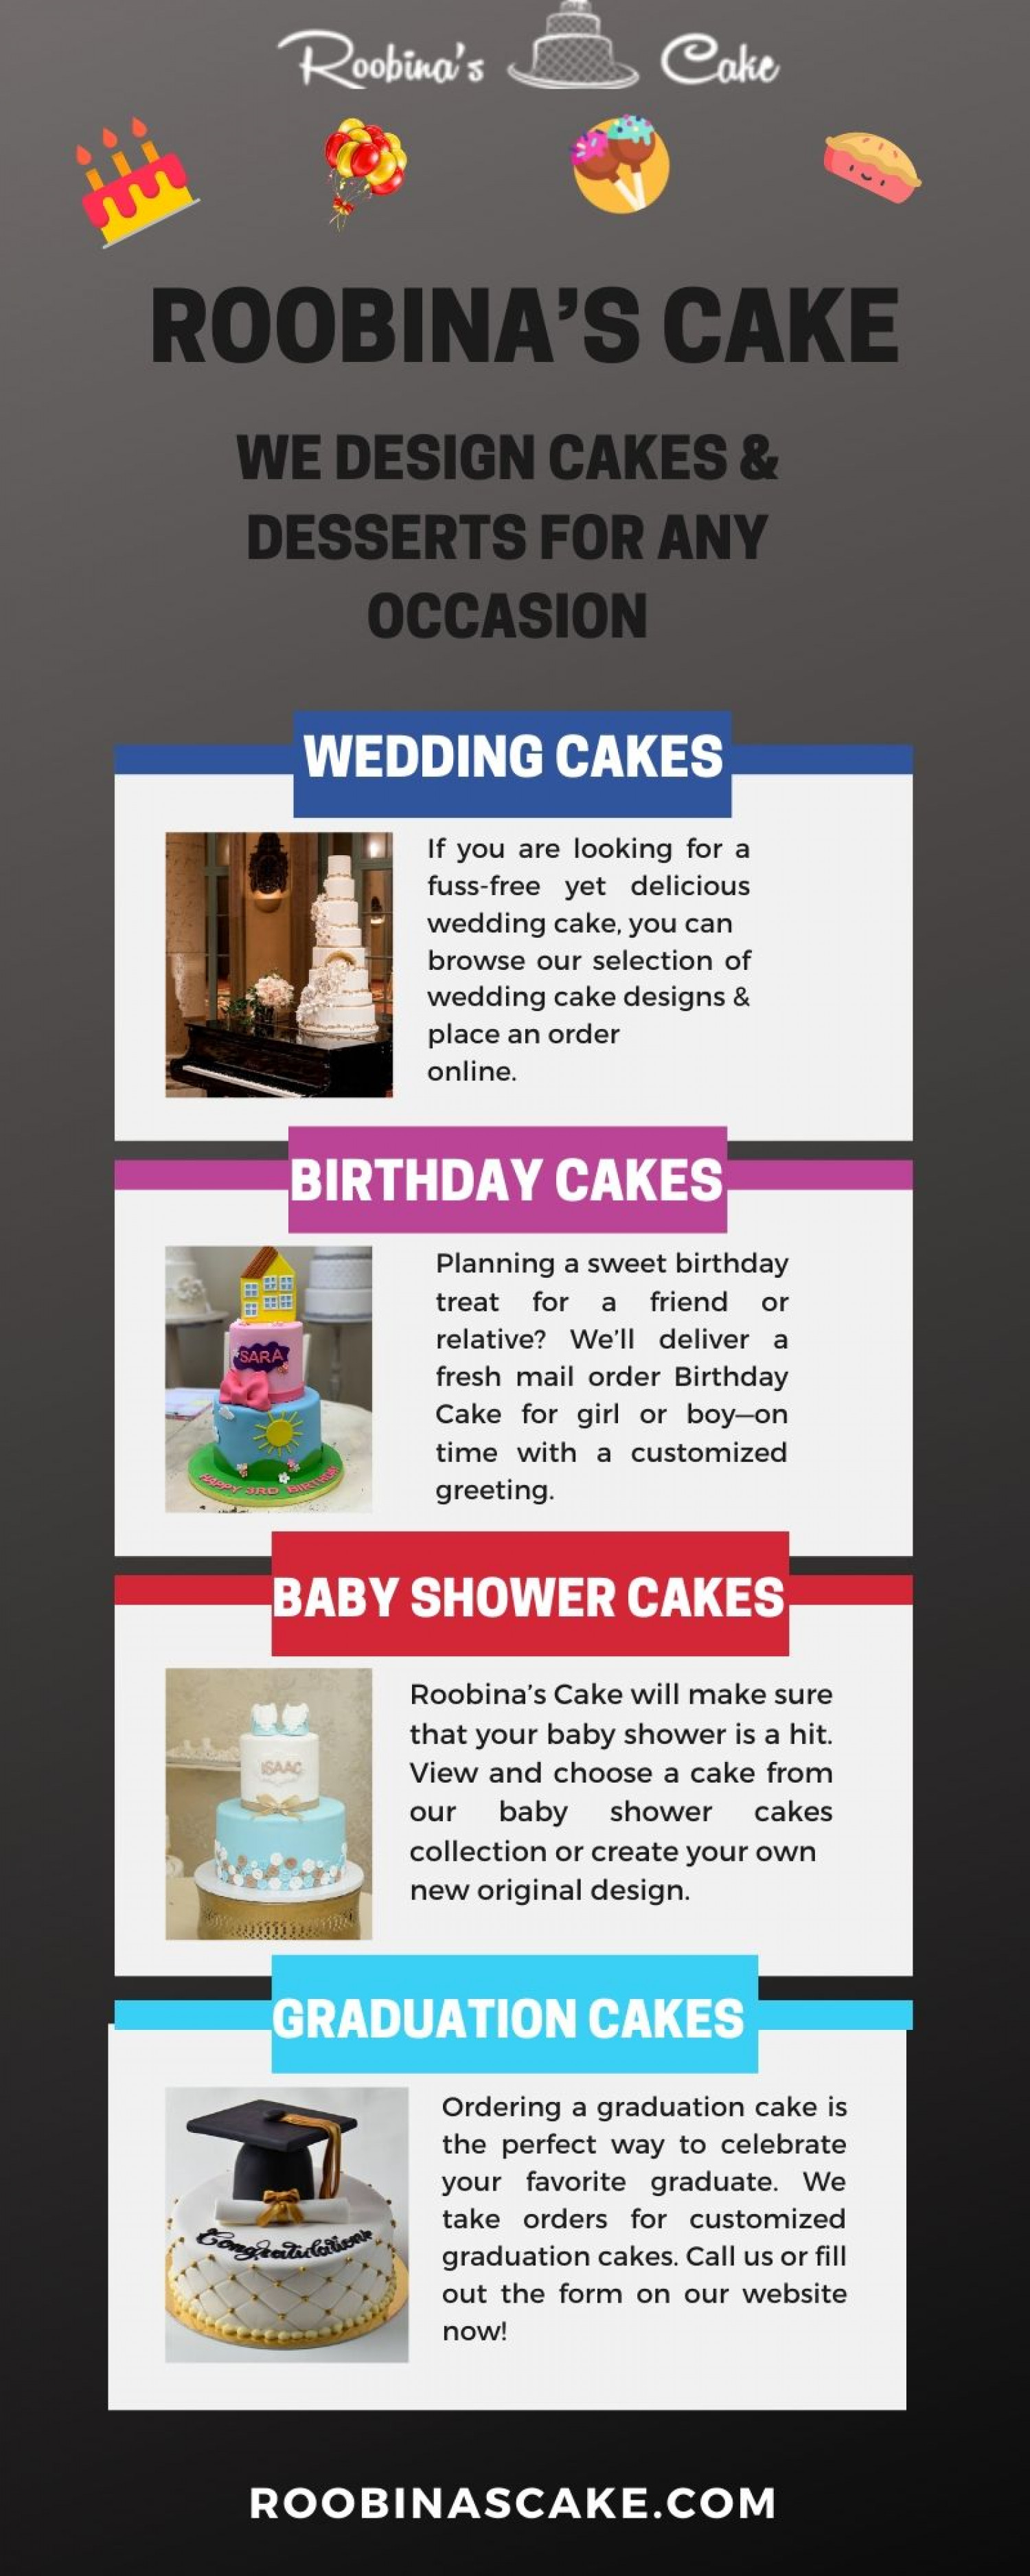 Best Wedding Cake designs  - Only at Roobina's Cake Infographic